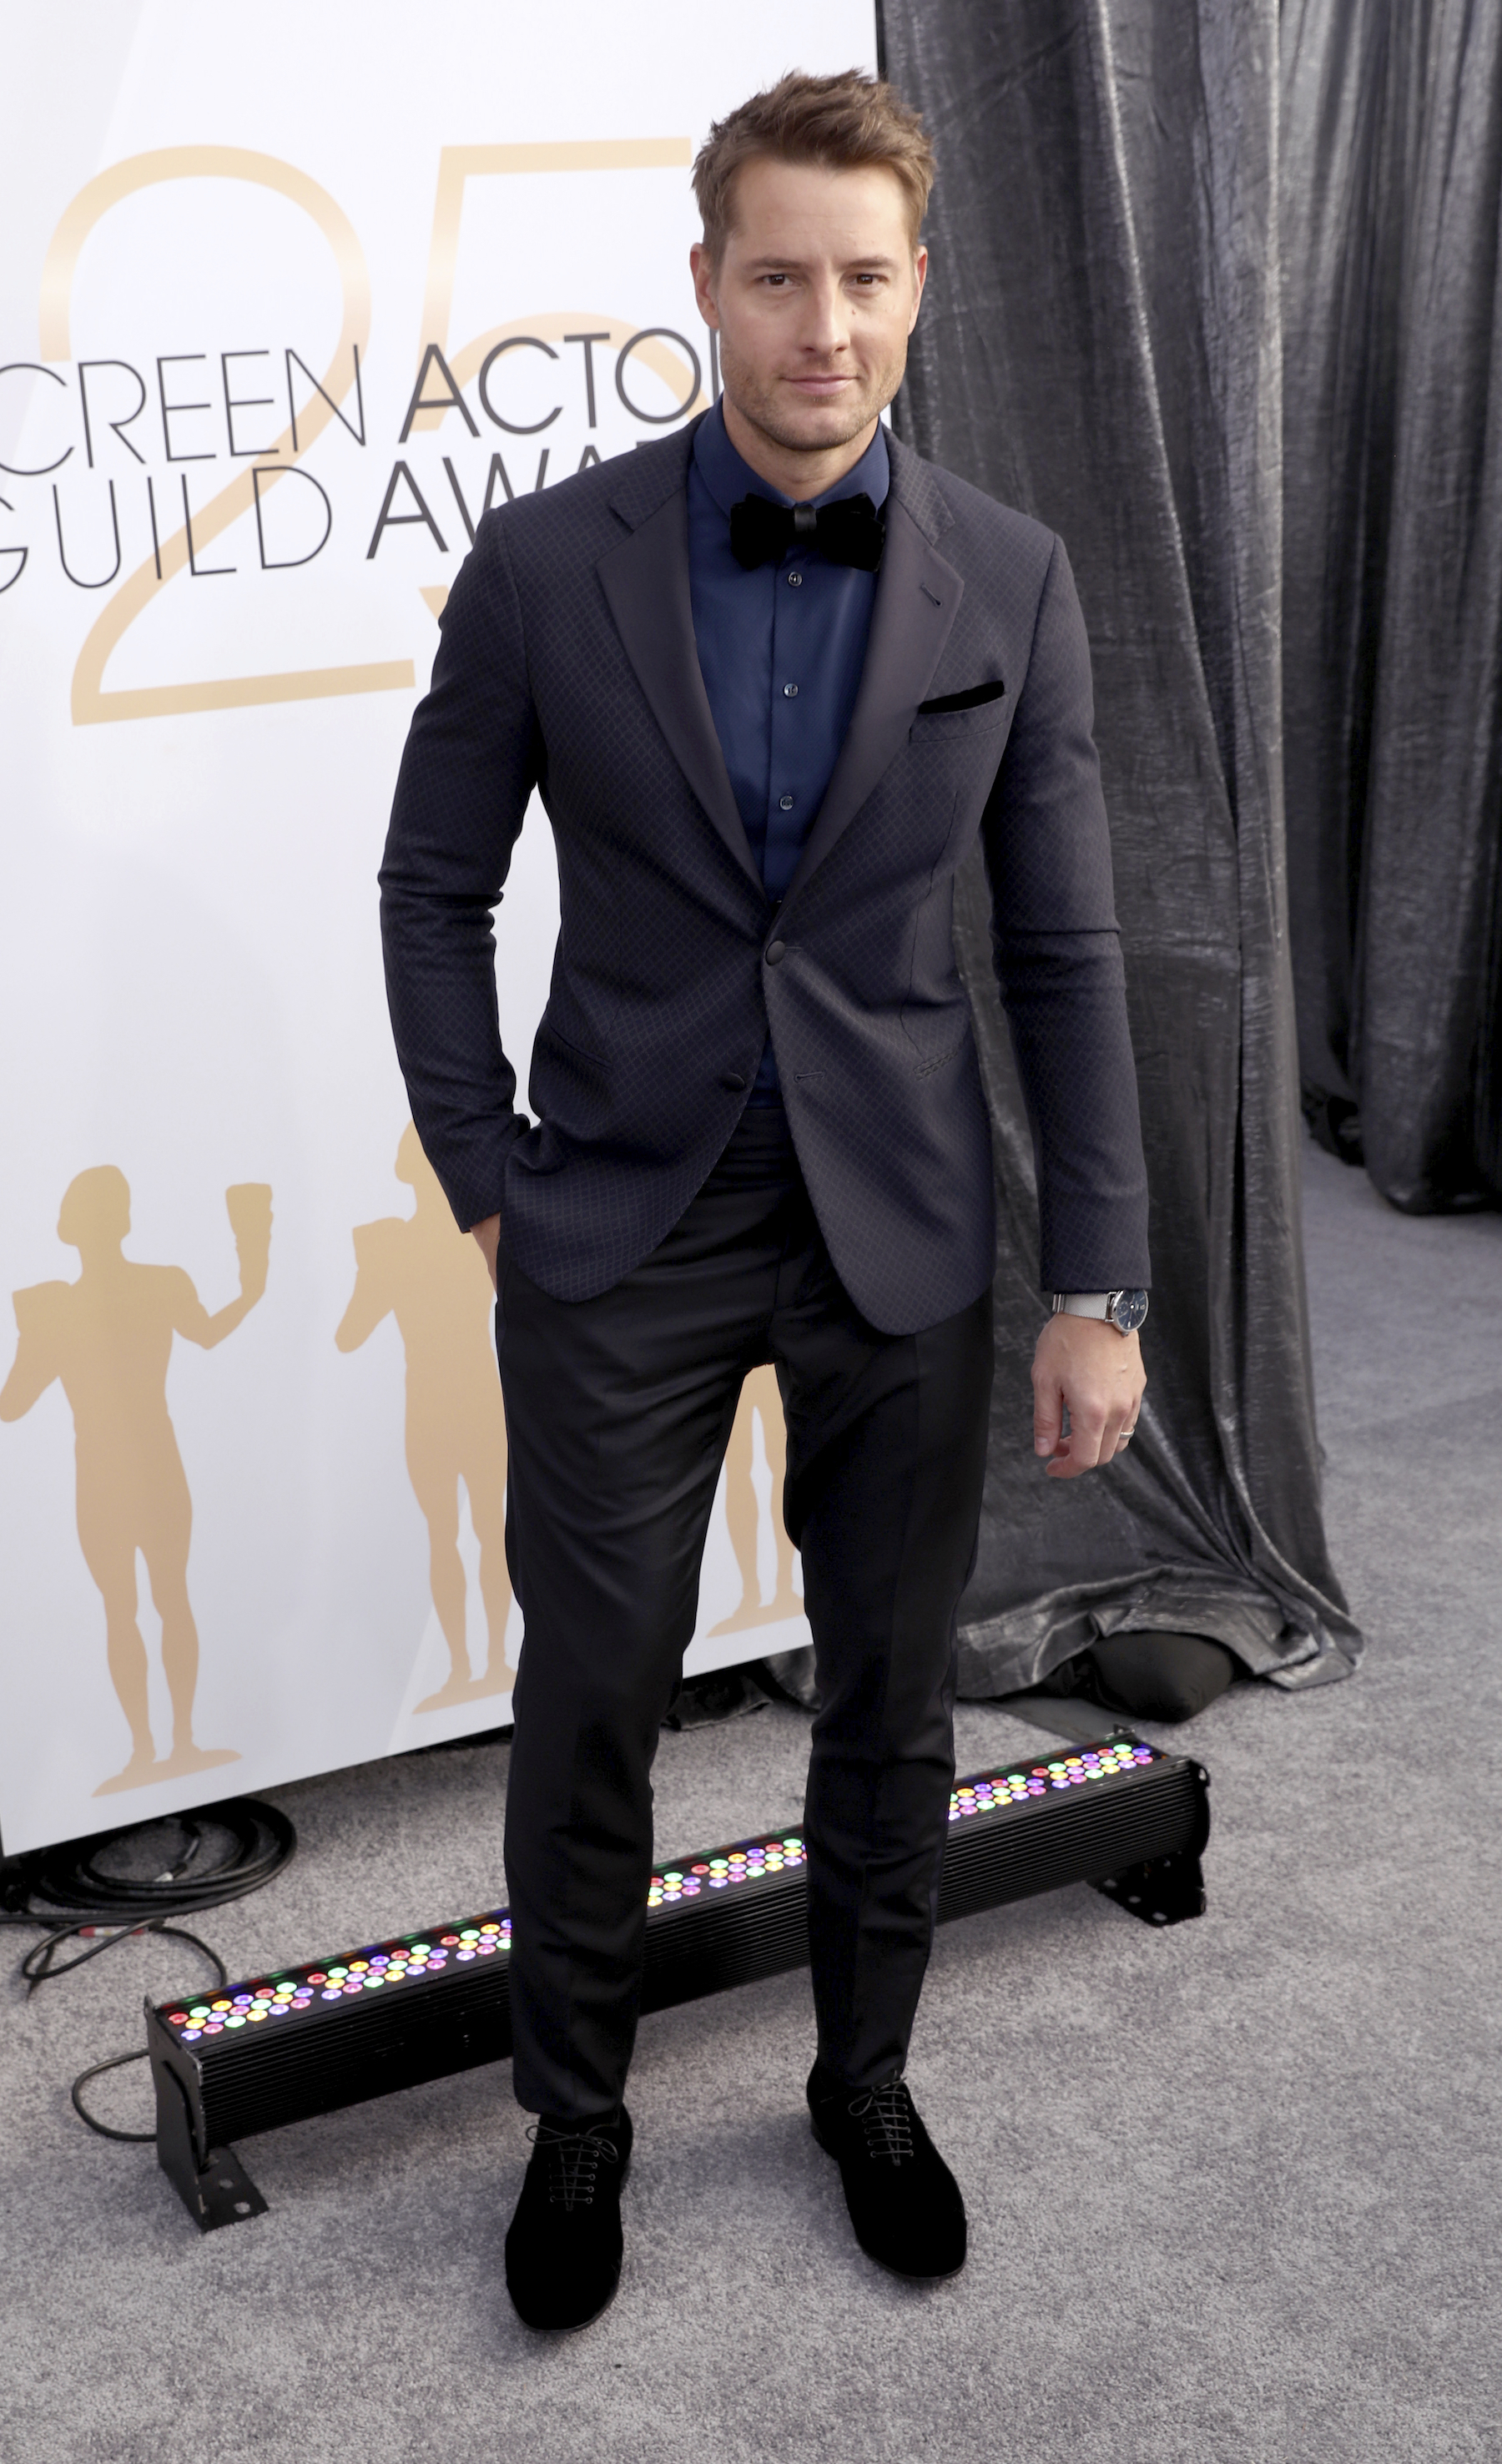 <div class='meta'><div class='origin-logo' data-origin='AP'></div><span class='caption-text' data-credit='Matt Sayles/Invision/AP'>Justin Hartley arrives at the 25th annual Screen Actors Guild Awards at the Shrine Auditorium & Expo Hall on Sunday, Jan. 27, 2019, in Los Angeles.</span></div>